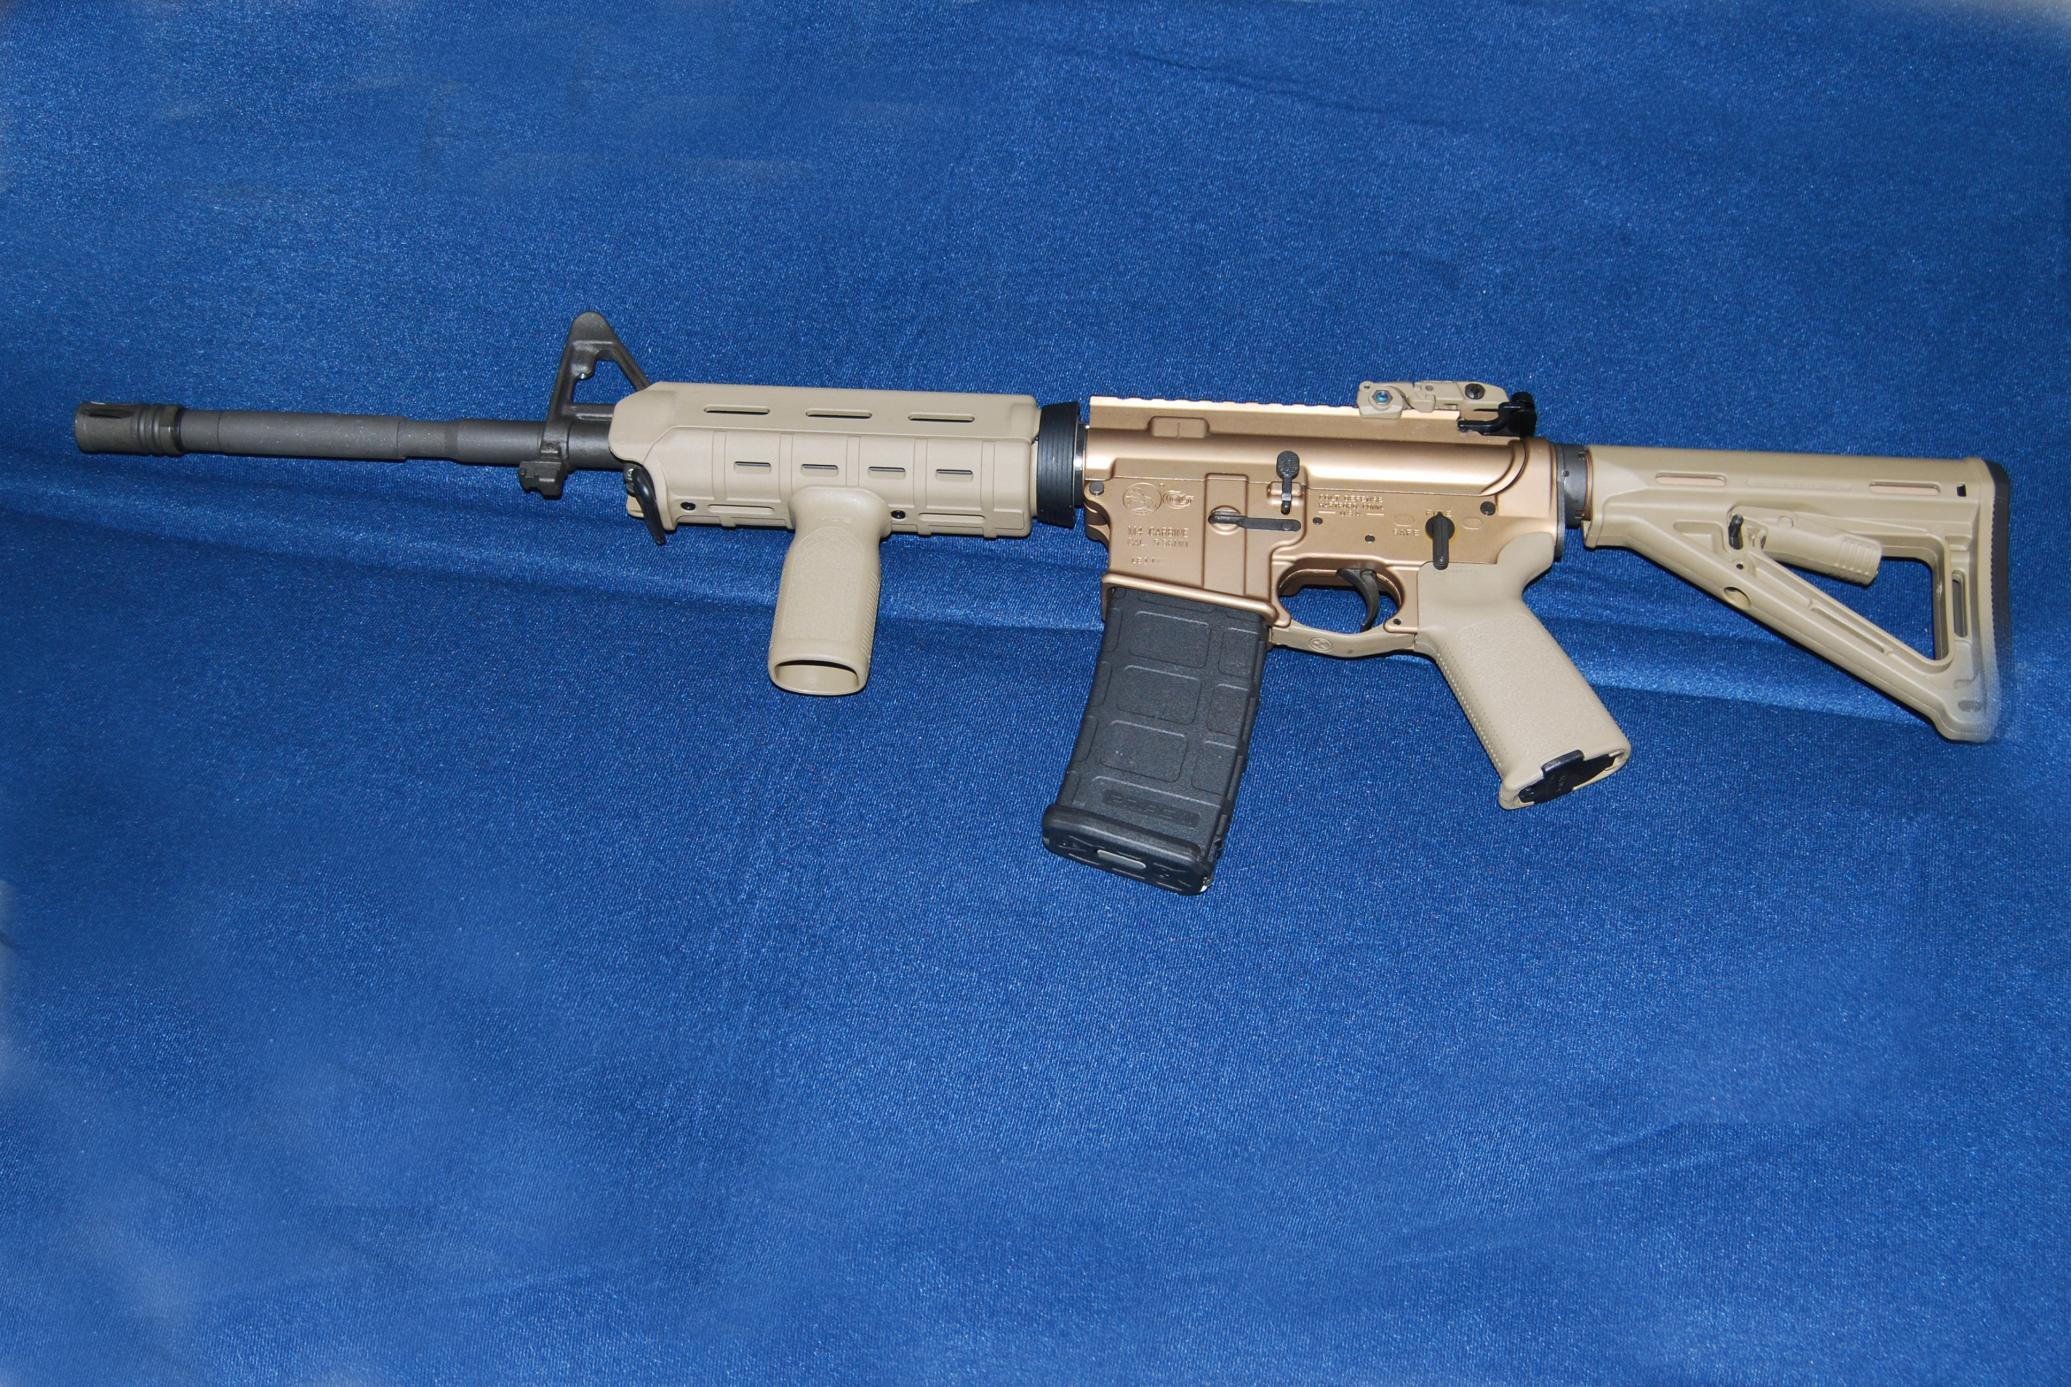 Picked up a sweet Colt today-dsc_0251.jpg